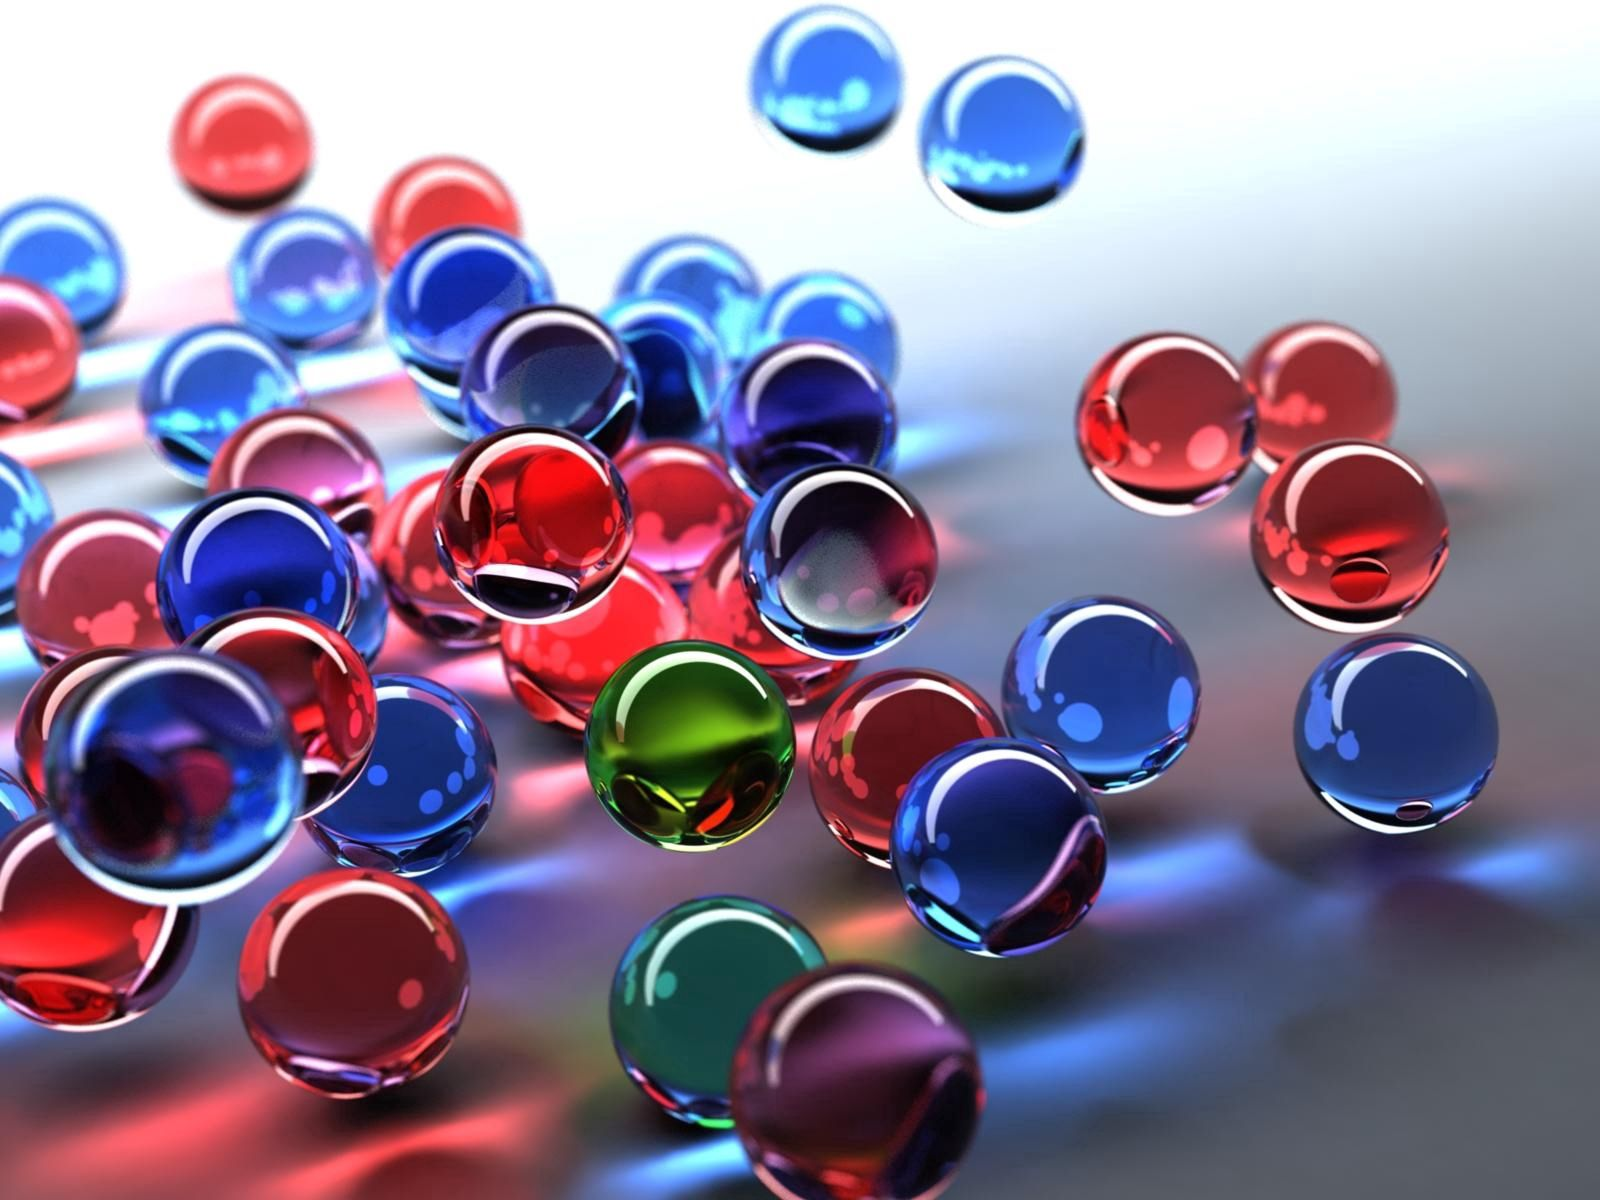 157934 download wallpaper Multicolored, Motley, 3D, Flight, Glass, Balls screensavers and pictures for free